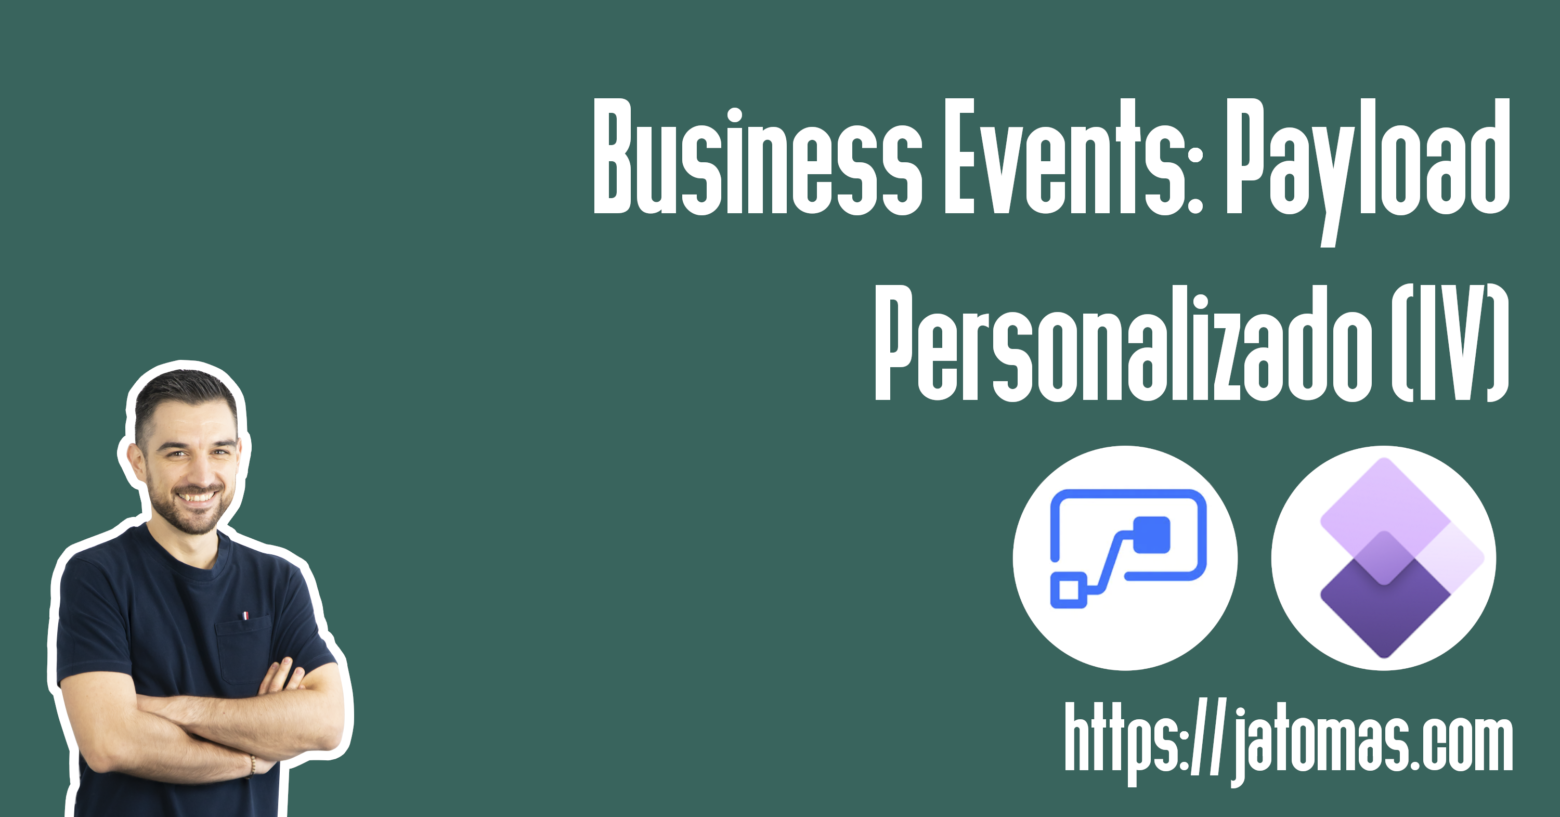 Business Events: Payload personalizado (IV)